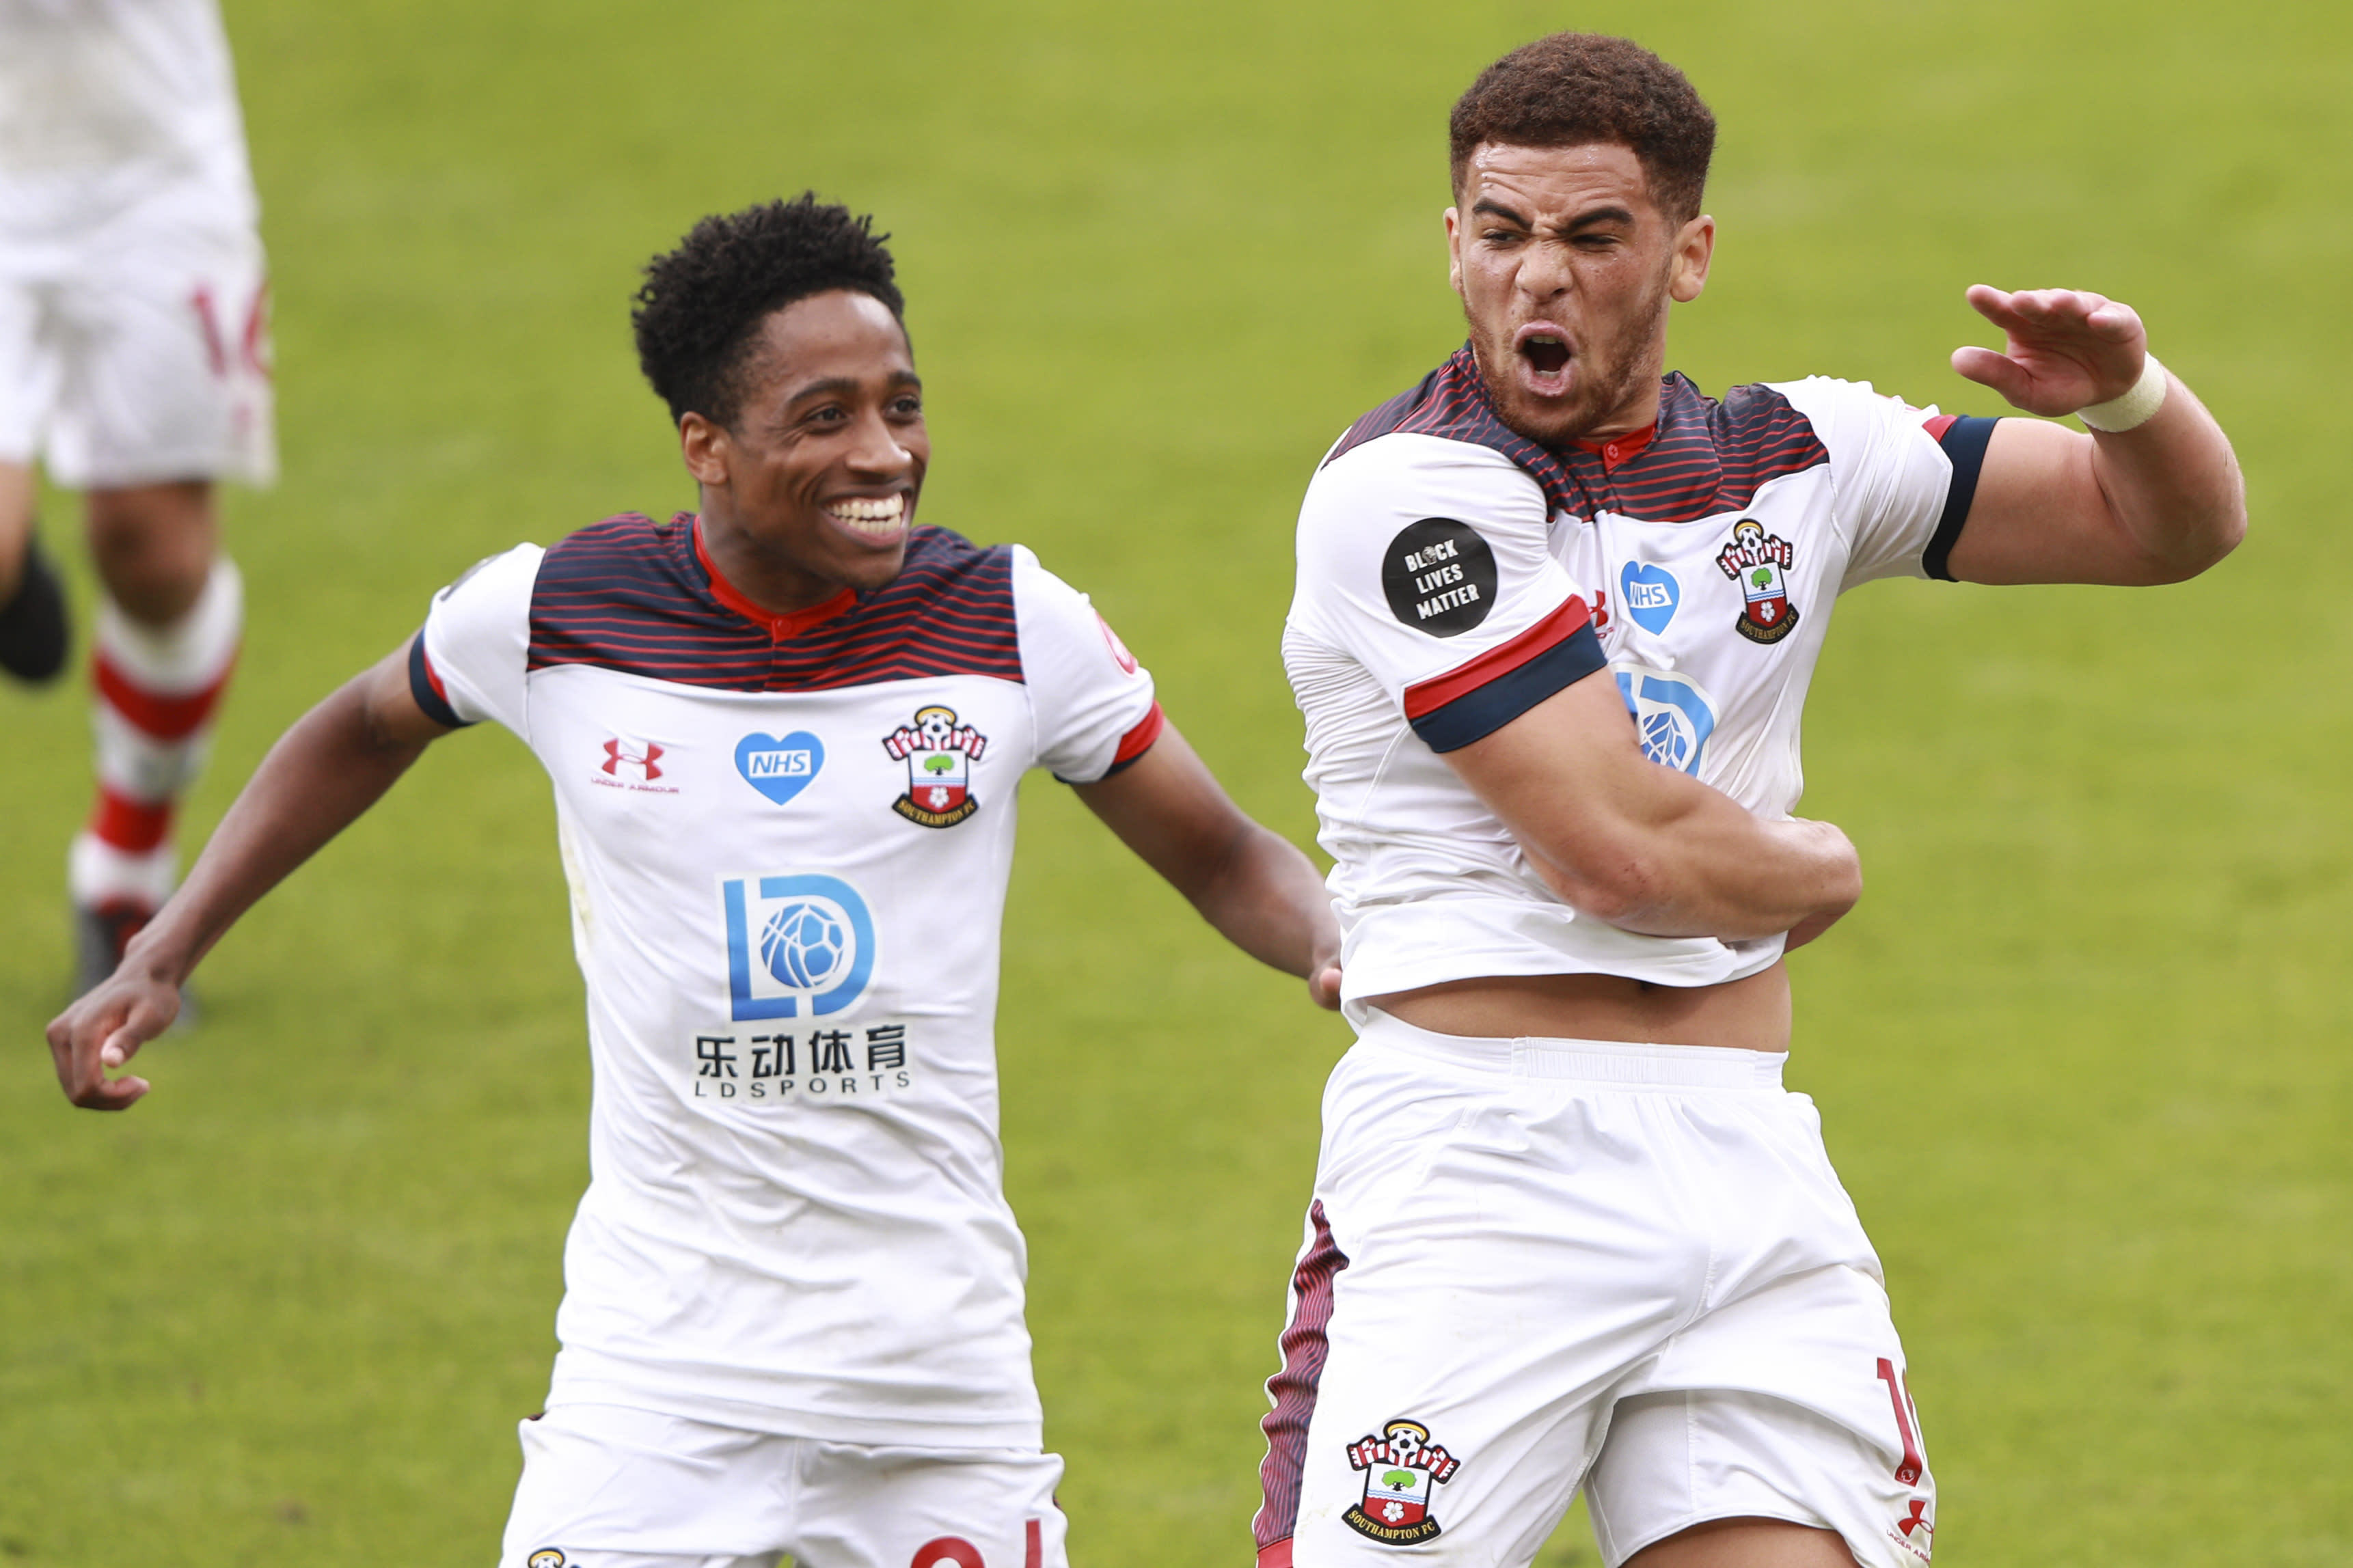 Southampton's Che Adams, right, celebrates with Kyle Walker-Peters after scoring his side's second goal during the English Premier League soccer match between Bournemouth and Southampton at Vitality Stadium in Bournemouth, England, Sunday, July 19, 2020. (Ian Walton/Pool Photo via AP)